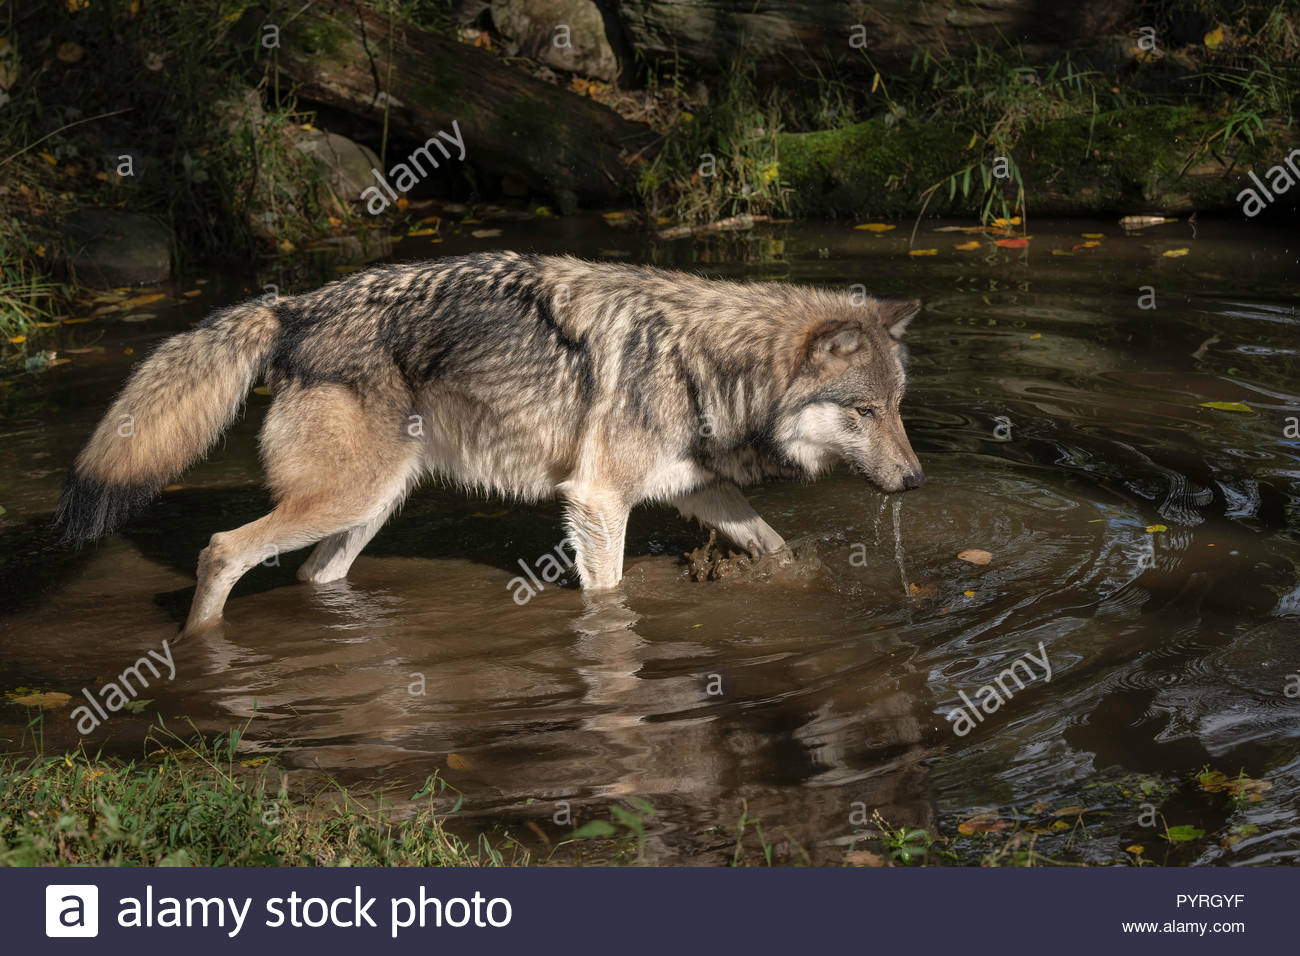 Timber Wolf (also known as a Gray Wolf or Grey Wolf) with water dripping from its muzzle, walking in the water, casting a reflection Stock Photo